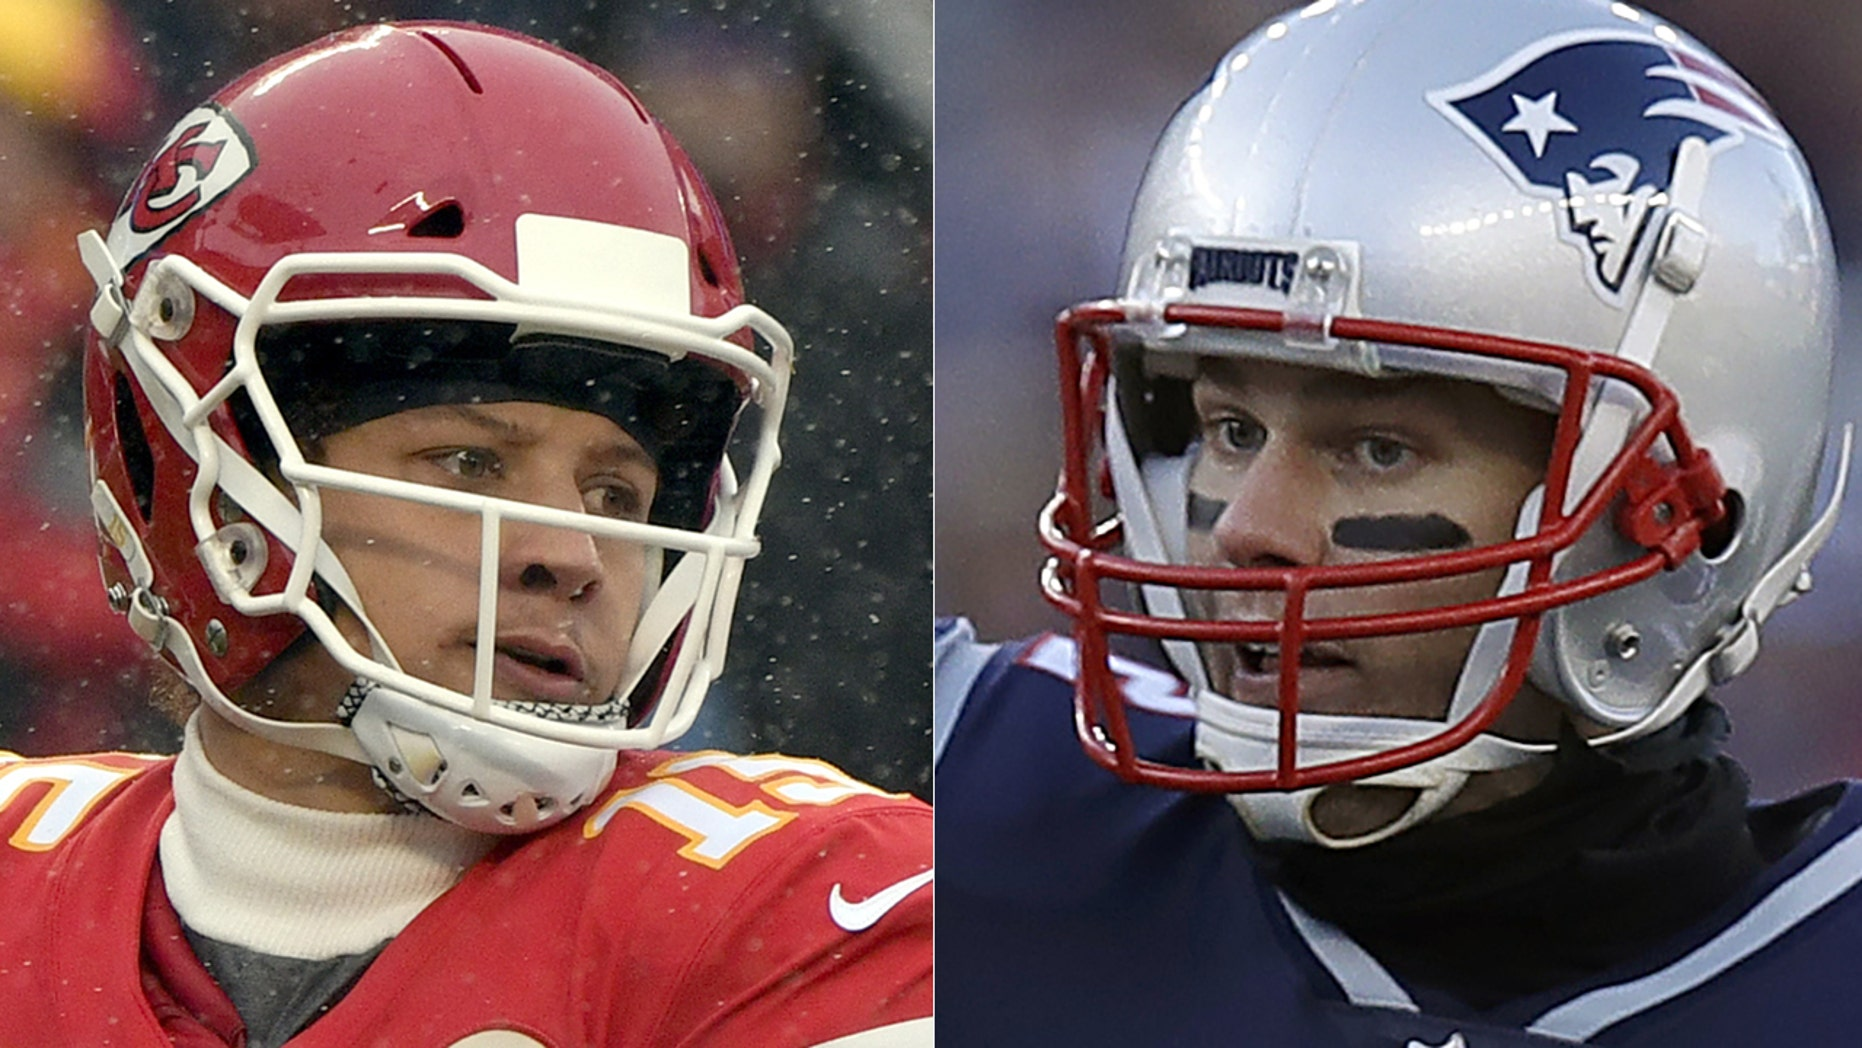 Patrick Mahomes and Tom Brady will face off for the second time this season.